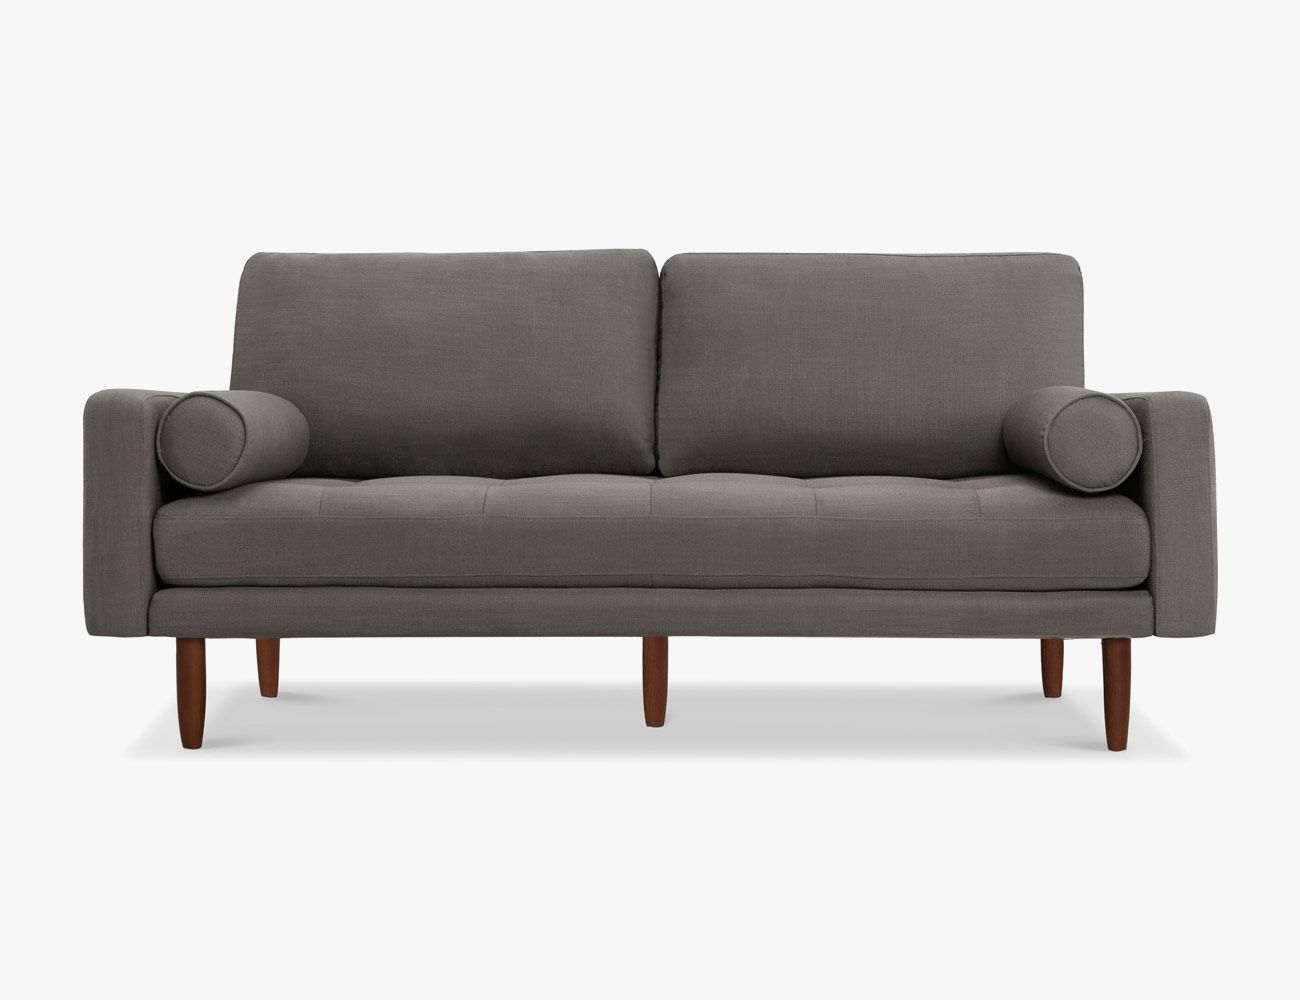 the 14 best sofas and couches you can buy in 2018 bad ass sofa rh pinterest com